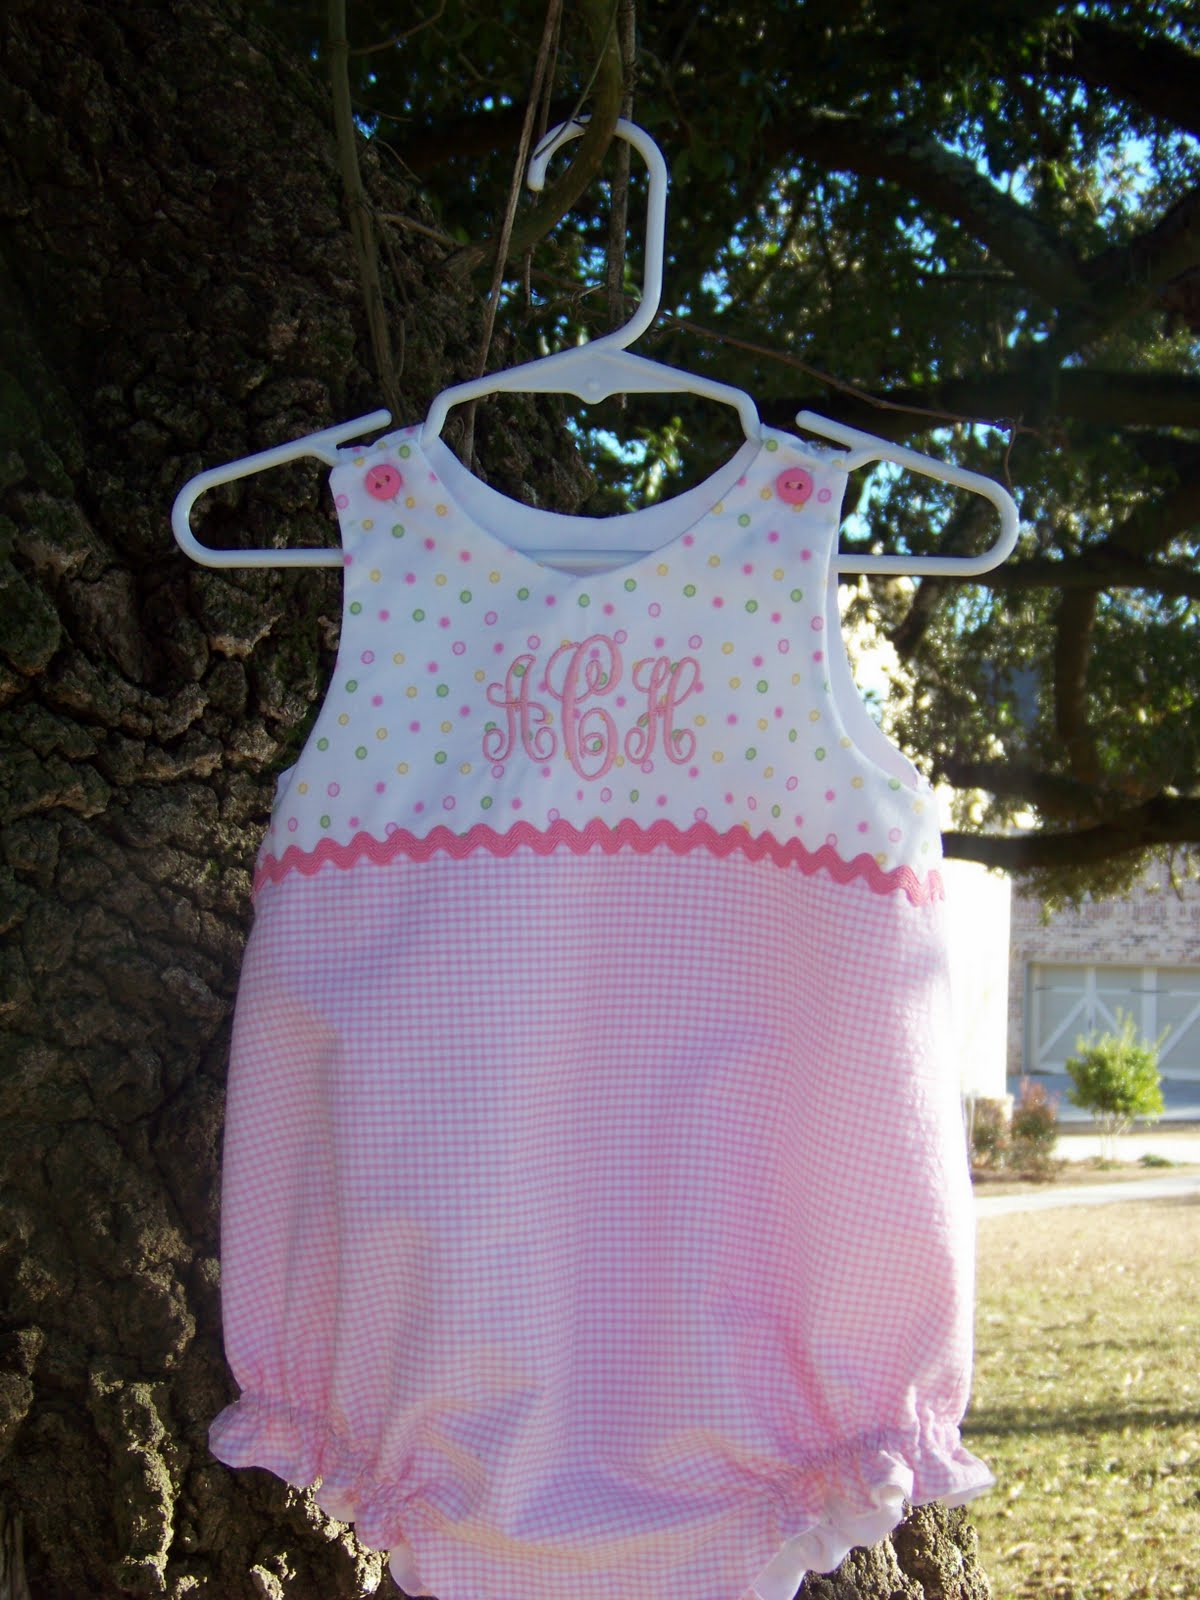 Appliqued Monogrammed and Custom Made Children s Clothing